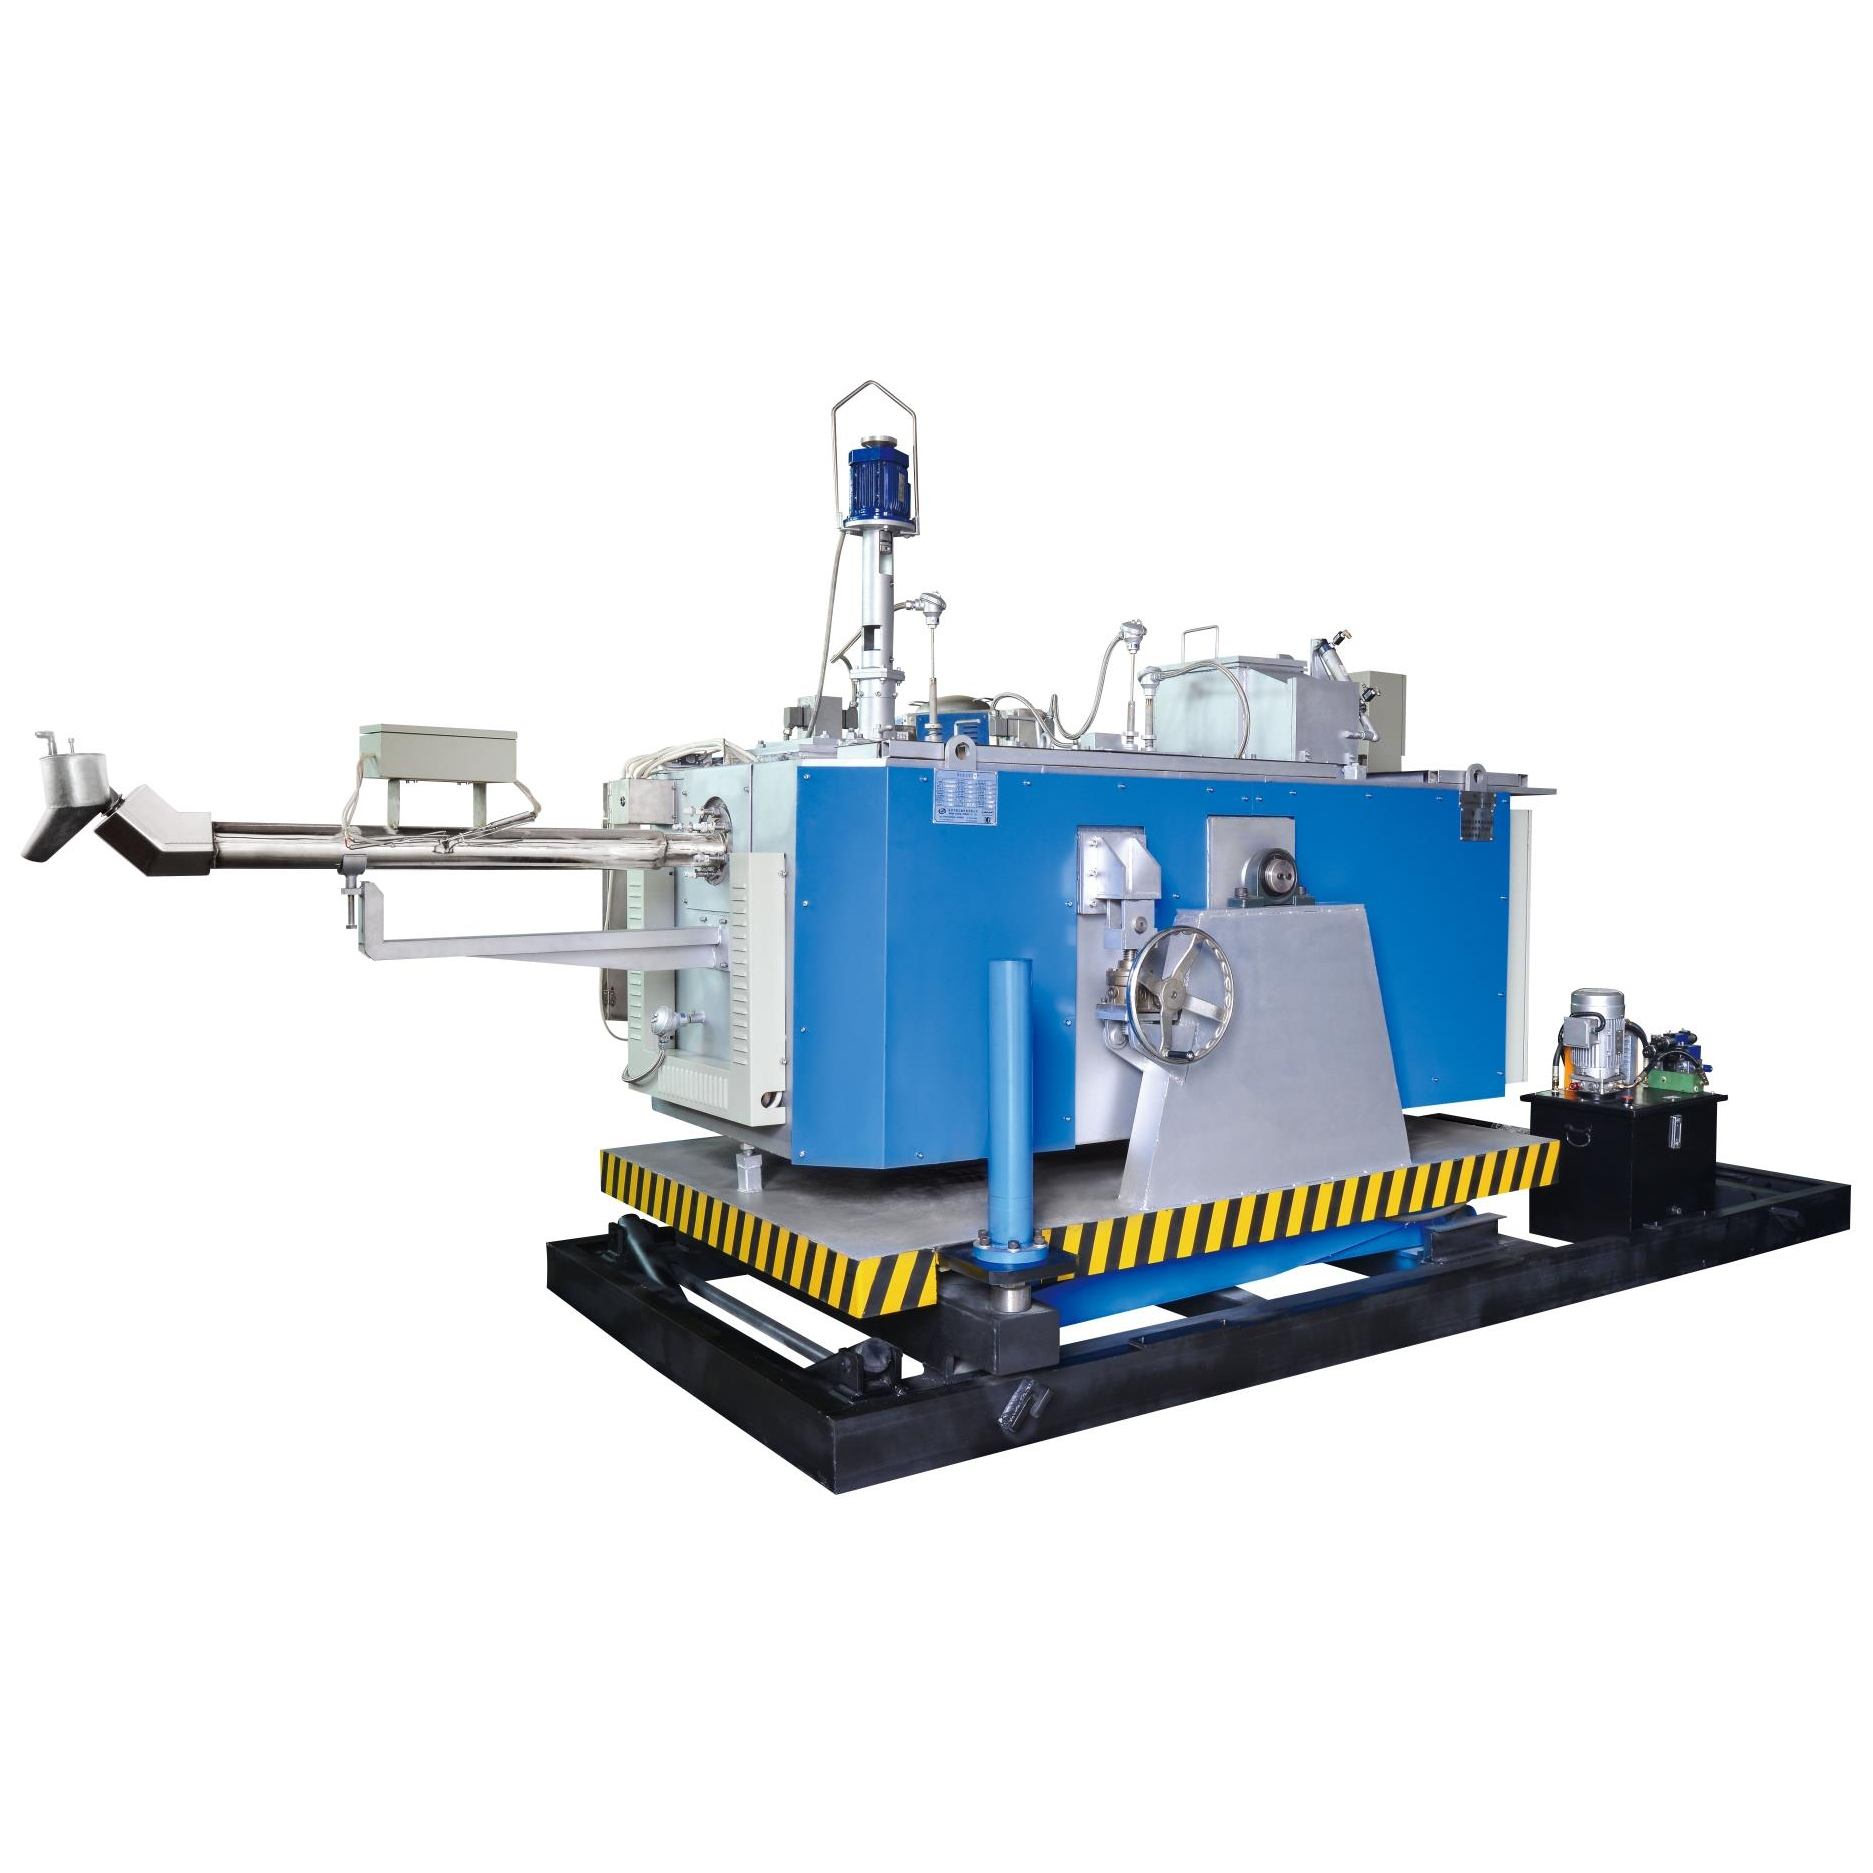 Electrical Magnesium Alloy Dosing Furnace 450kg/h